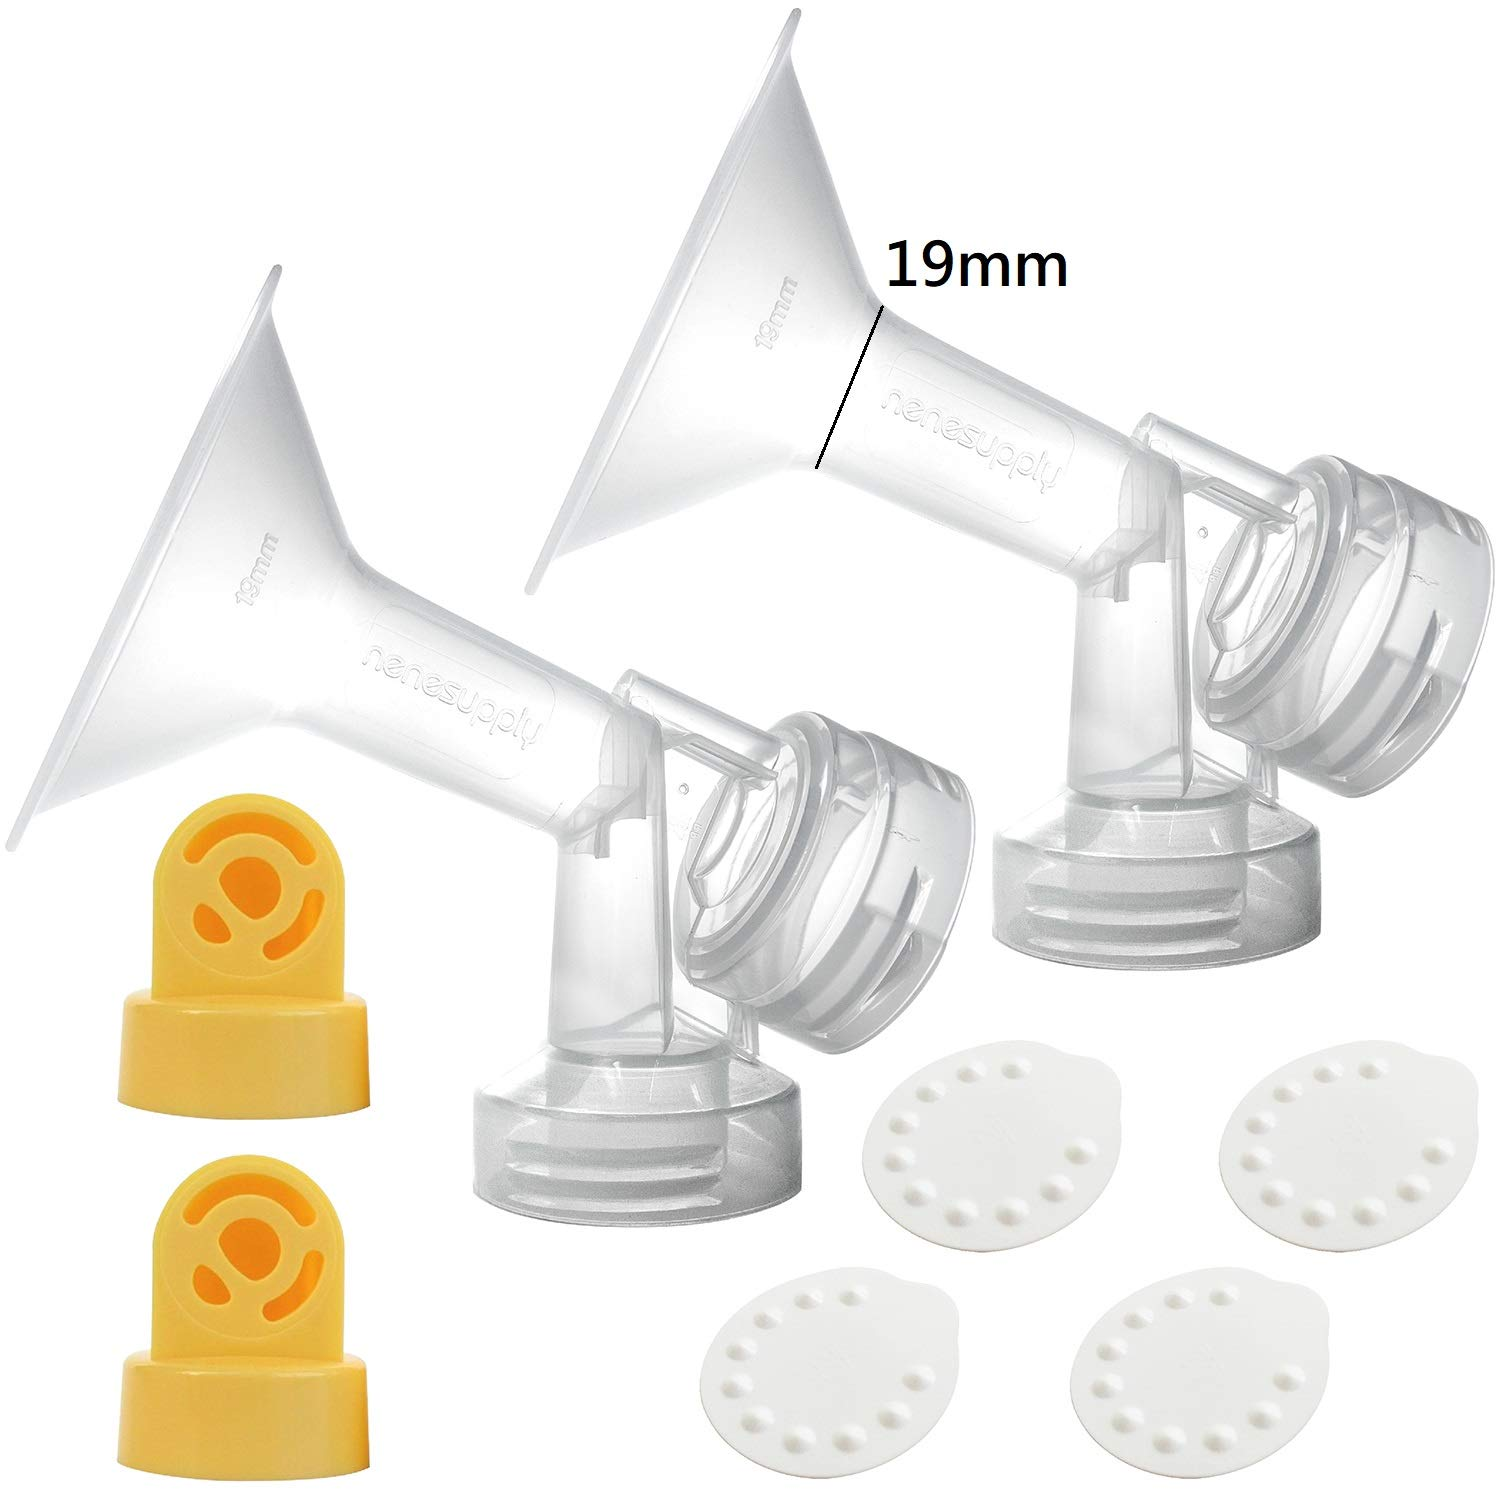 Nenesupply Compatible Pump Parts for Medela Breastpump Not Original Medela Pump Parts 19mm Breastshield Valve Membrane for Medela Pump in Style Medela Symphony Medela Swing Replace Medela Breastshield by NENESUPPLY